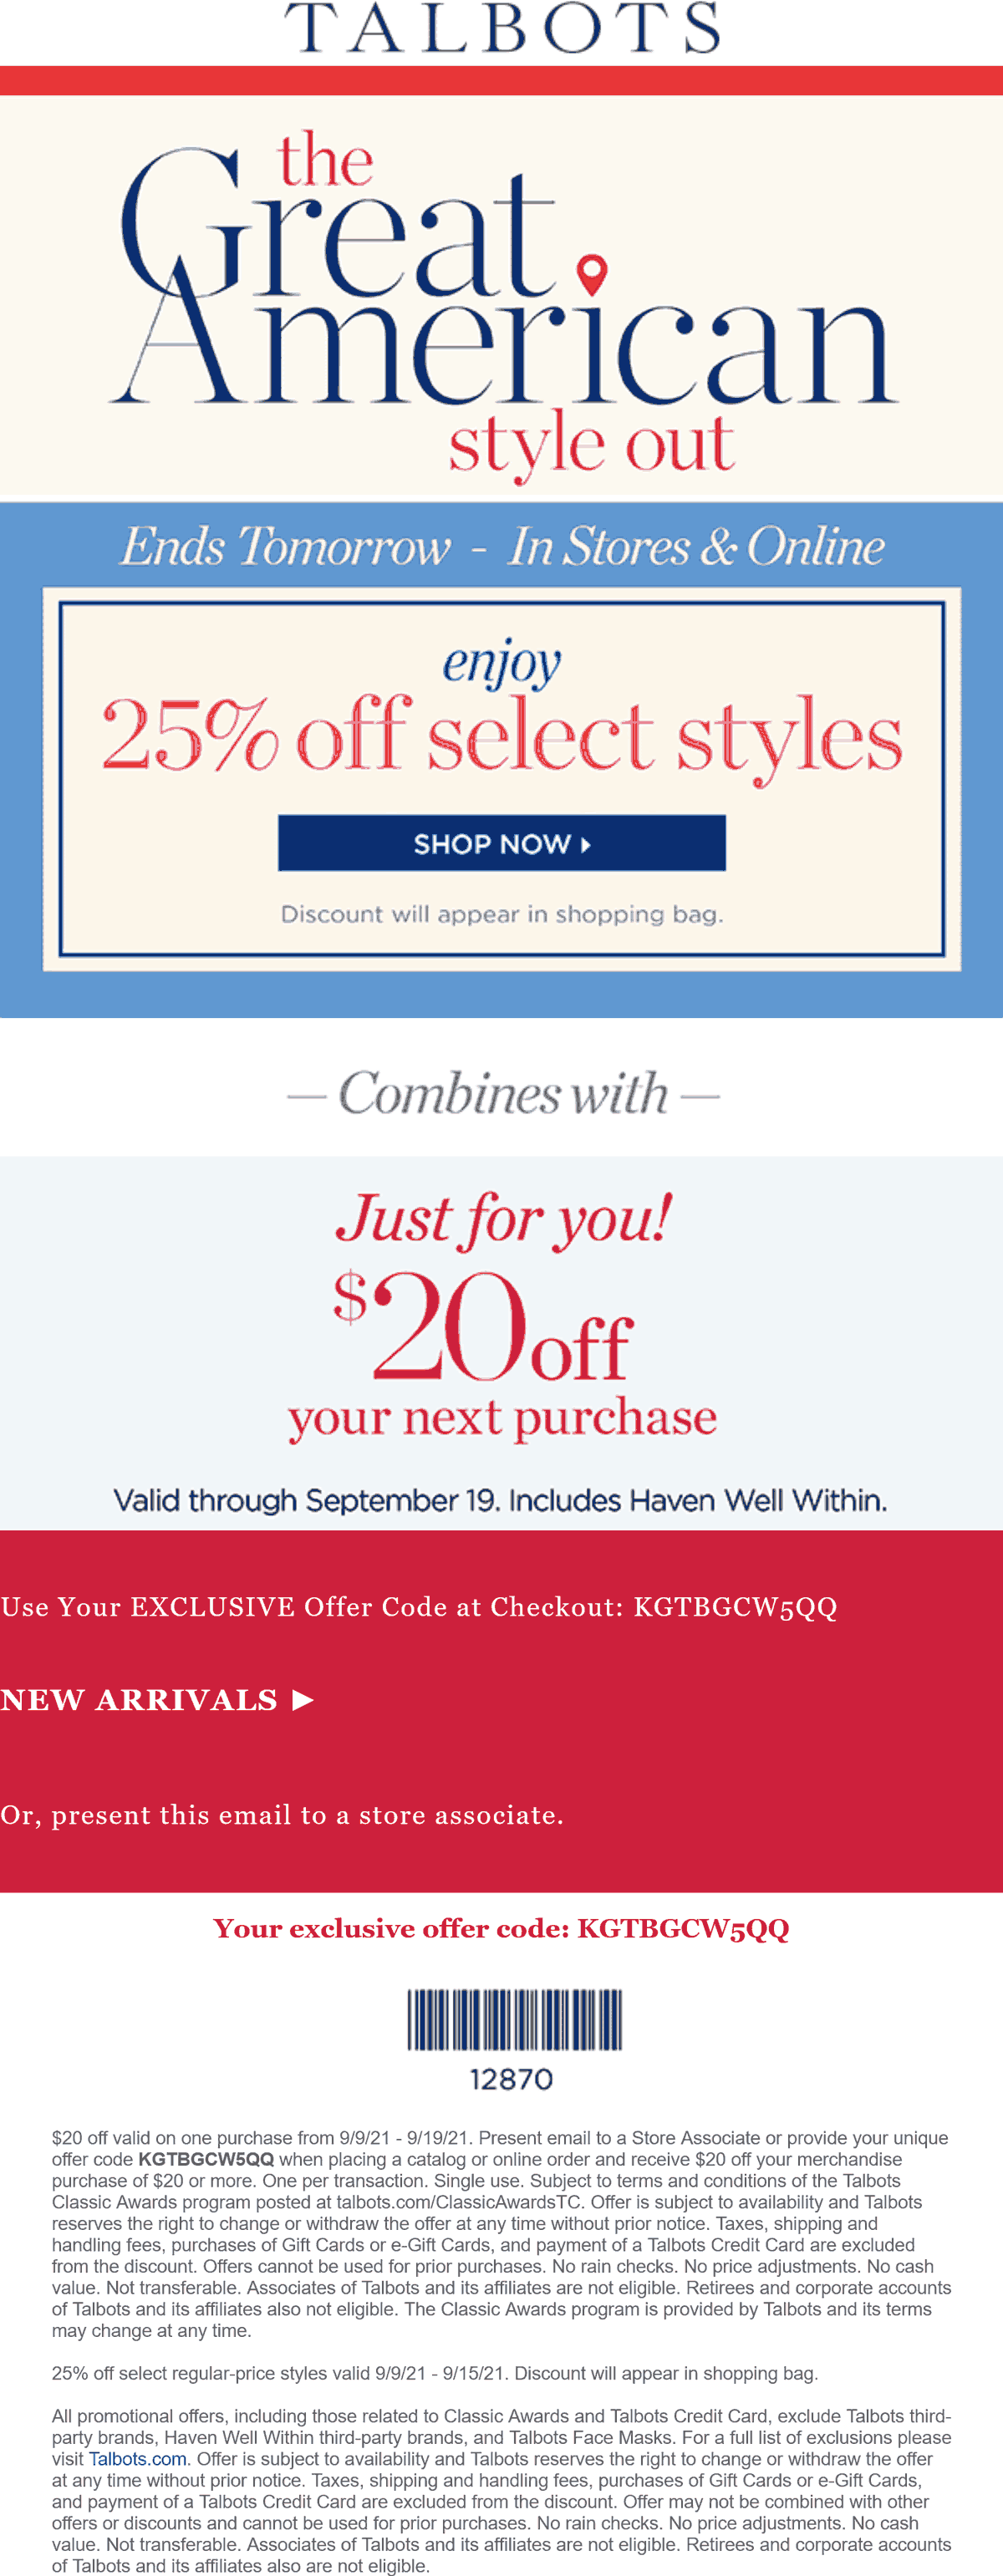 Talbots coupons & promo code for [October 2021]